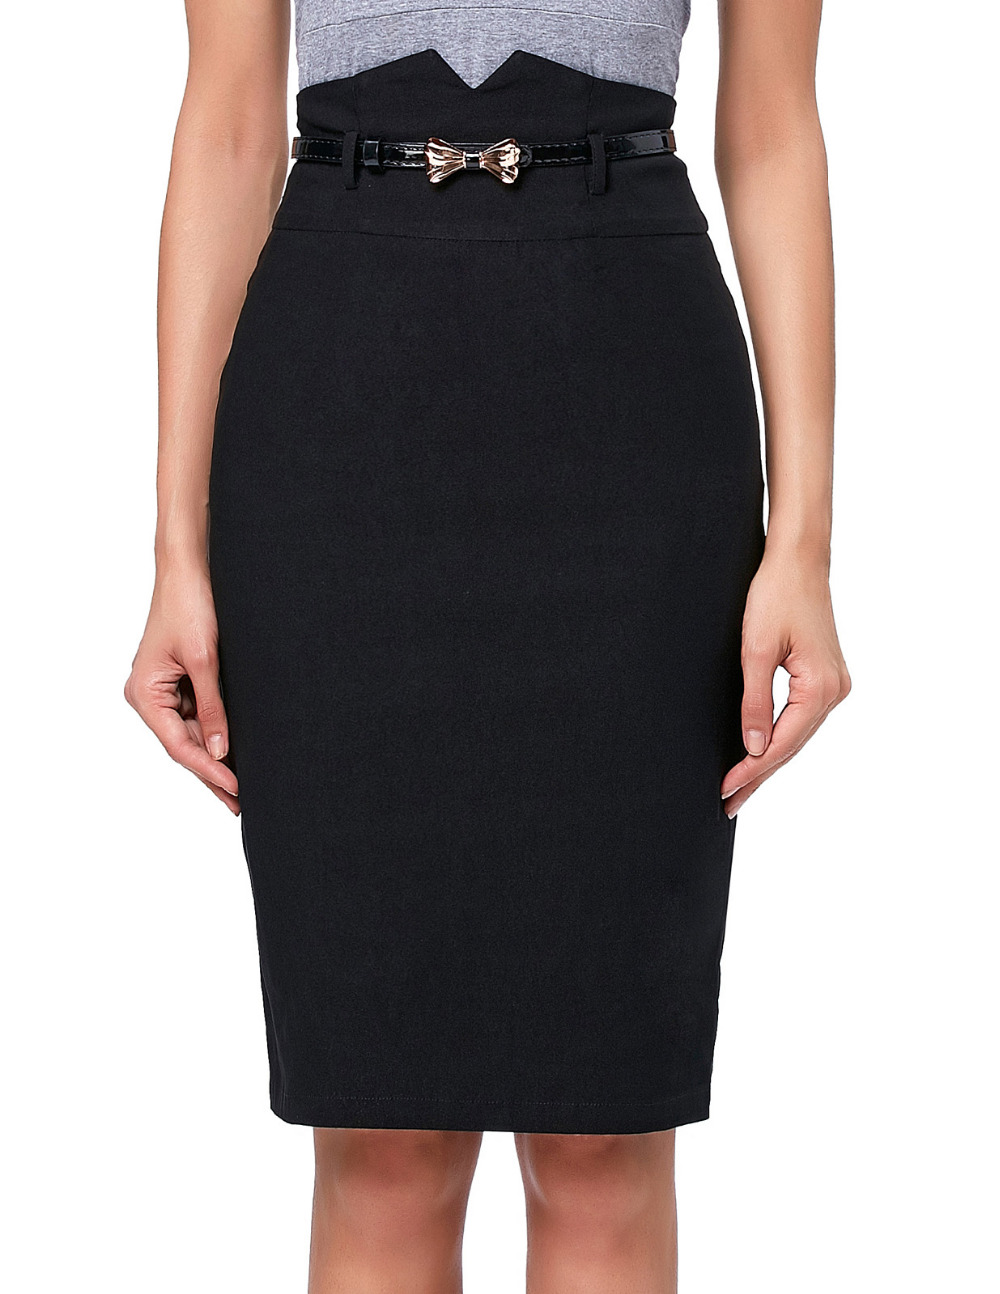 Compare Prices on Belt Pencil Skirt- Online Shopping/Buy Low Price ...